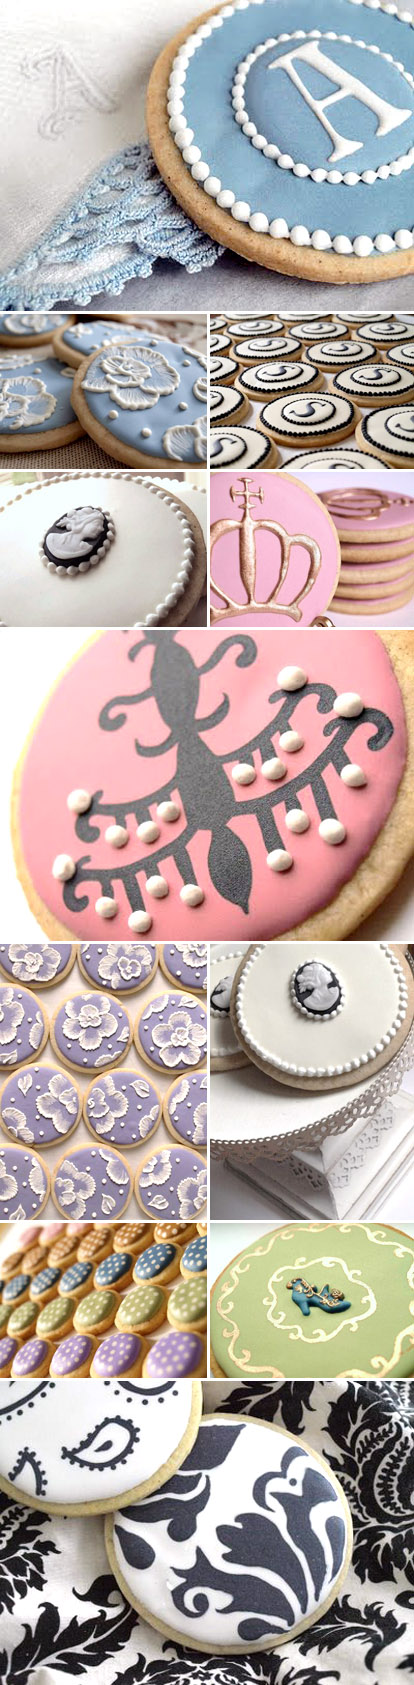 custom decorated wedding sugar cookies in damask, monogram, cameo, and fabric embroidery by SweetAmbs